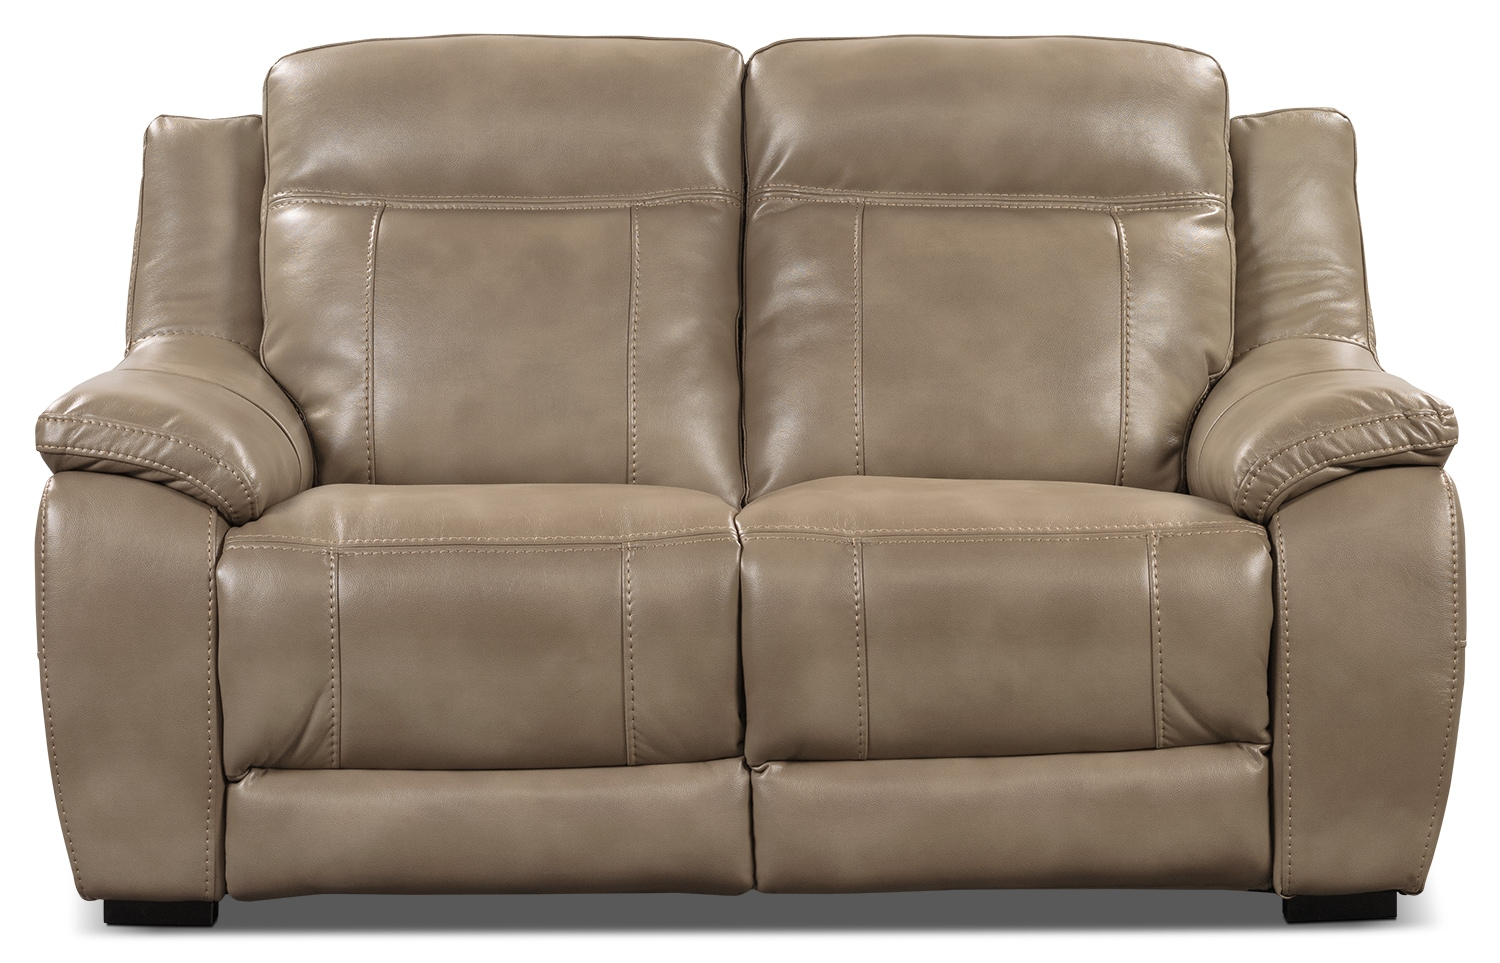 Living Room Furniture - Novo Leather-Look Fabric Loveseat – Taupe